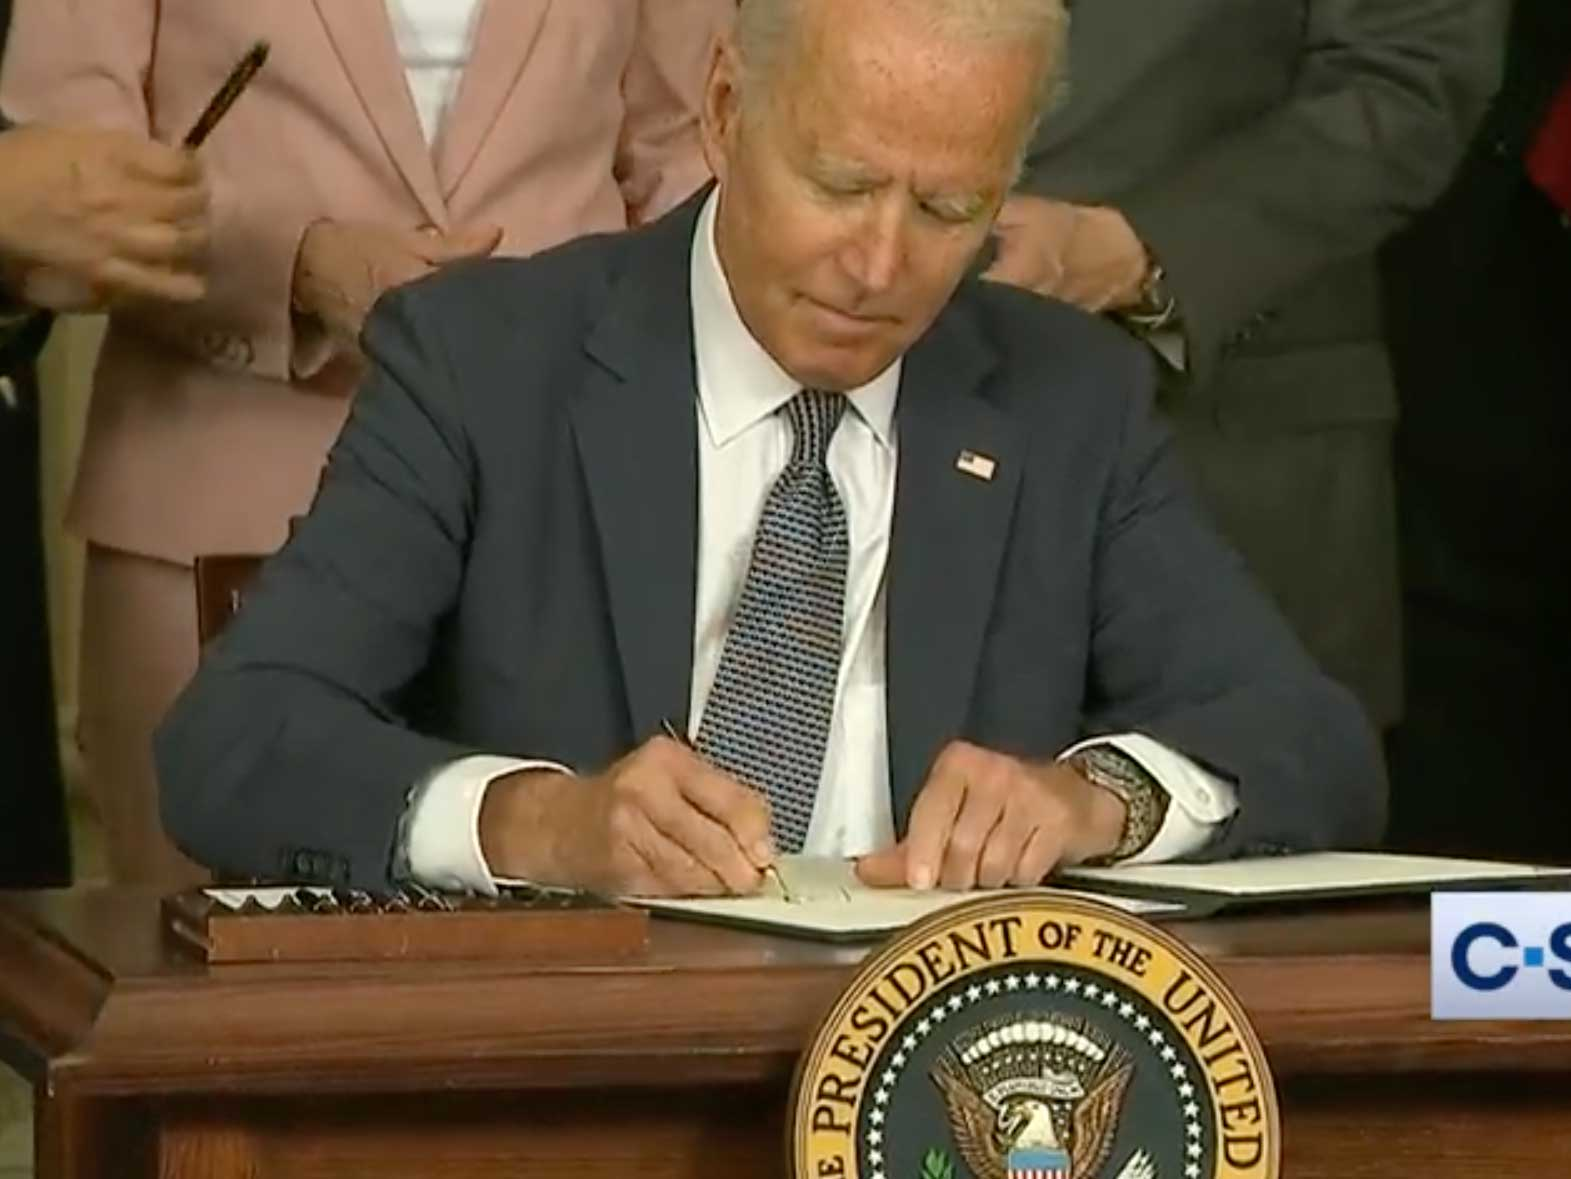 President Biden signs executive order on competition